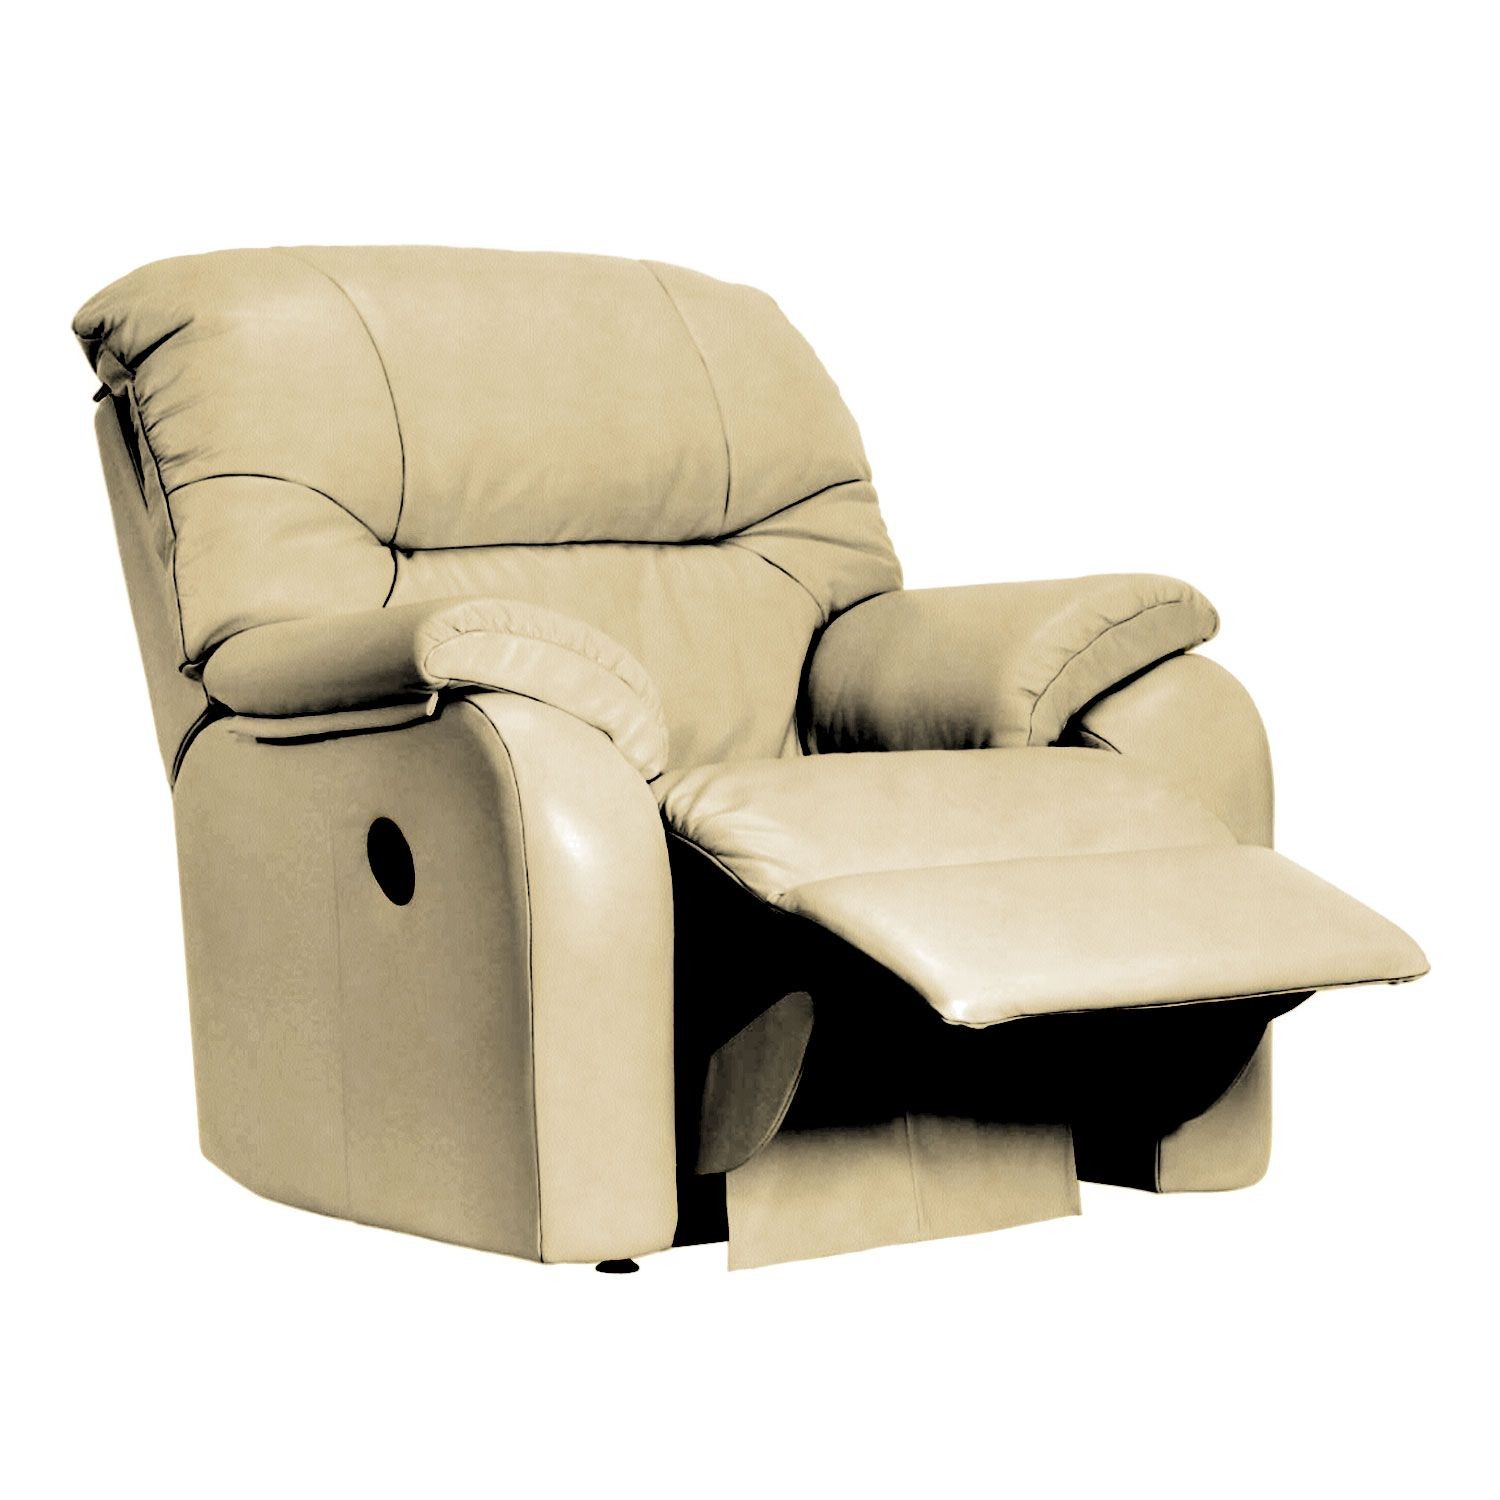 G Plan Mistral Manual Recliner Leather Armchair Throughout Portmeirion Armchairs (View 15 of 15)